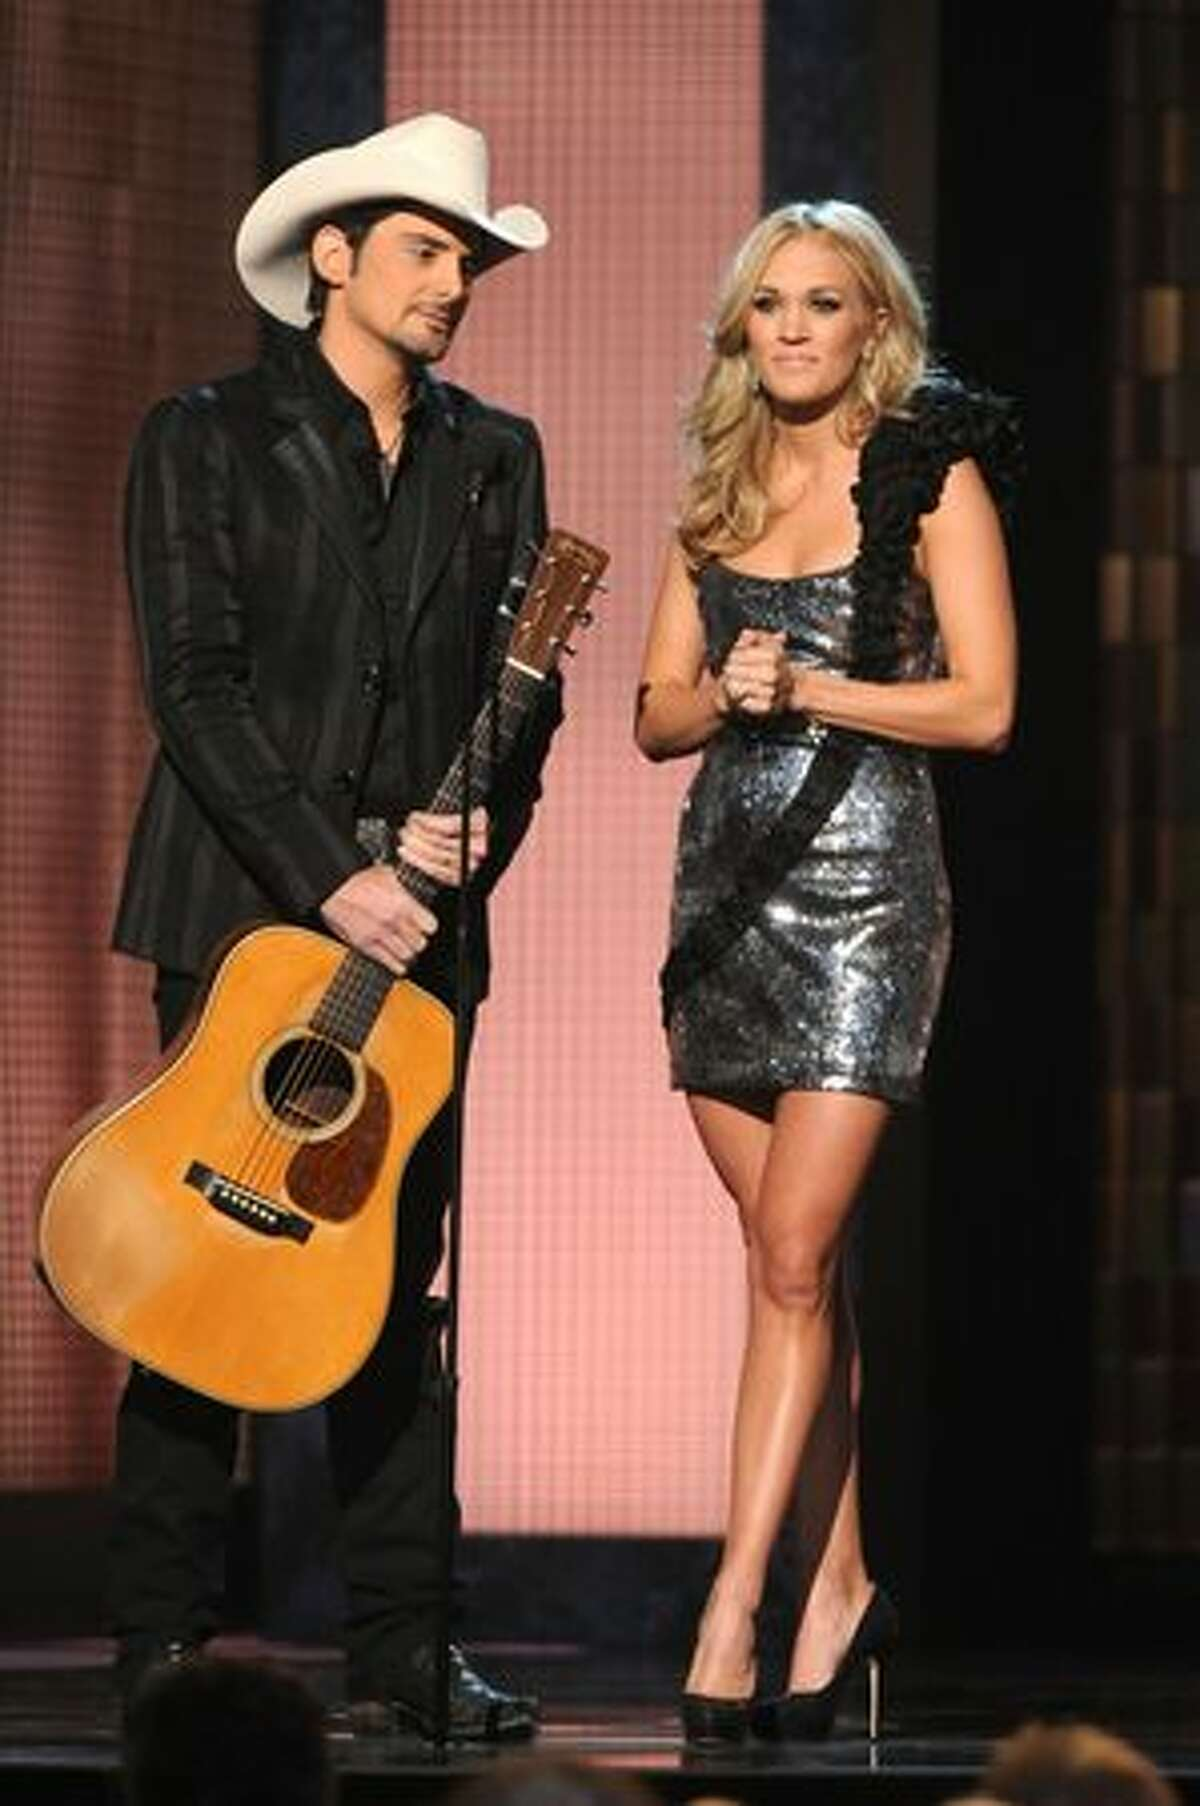 Hosts Brad Paisley and Carrie Underwood perform onstage at the 44th Annual CMA Awards at the Bridgestone Arena on Wednesday in Nashville, Tennessee.